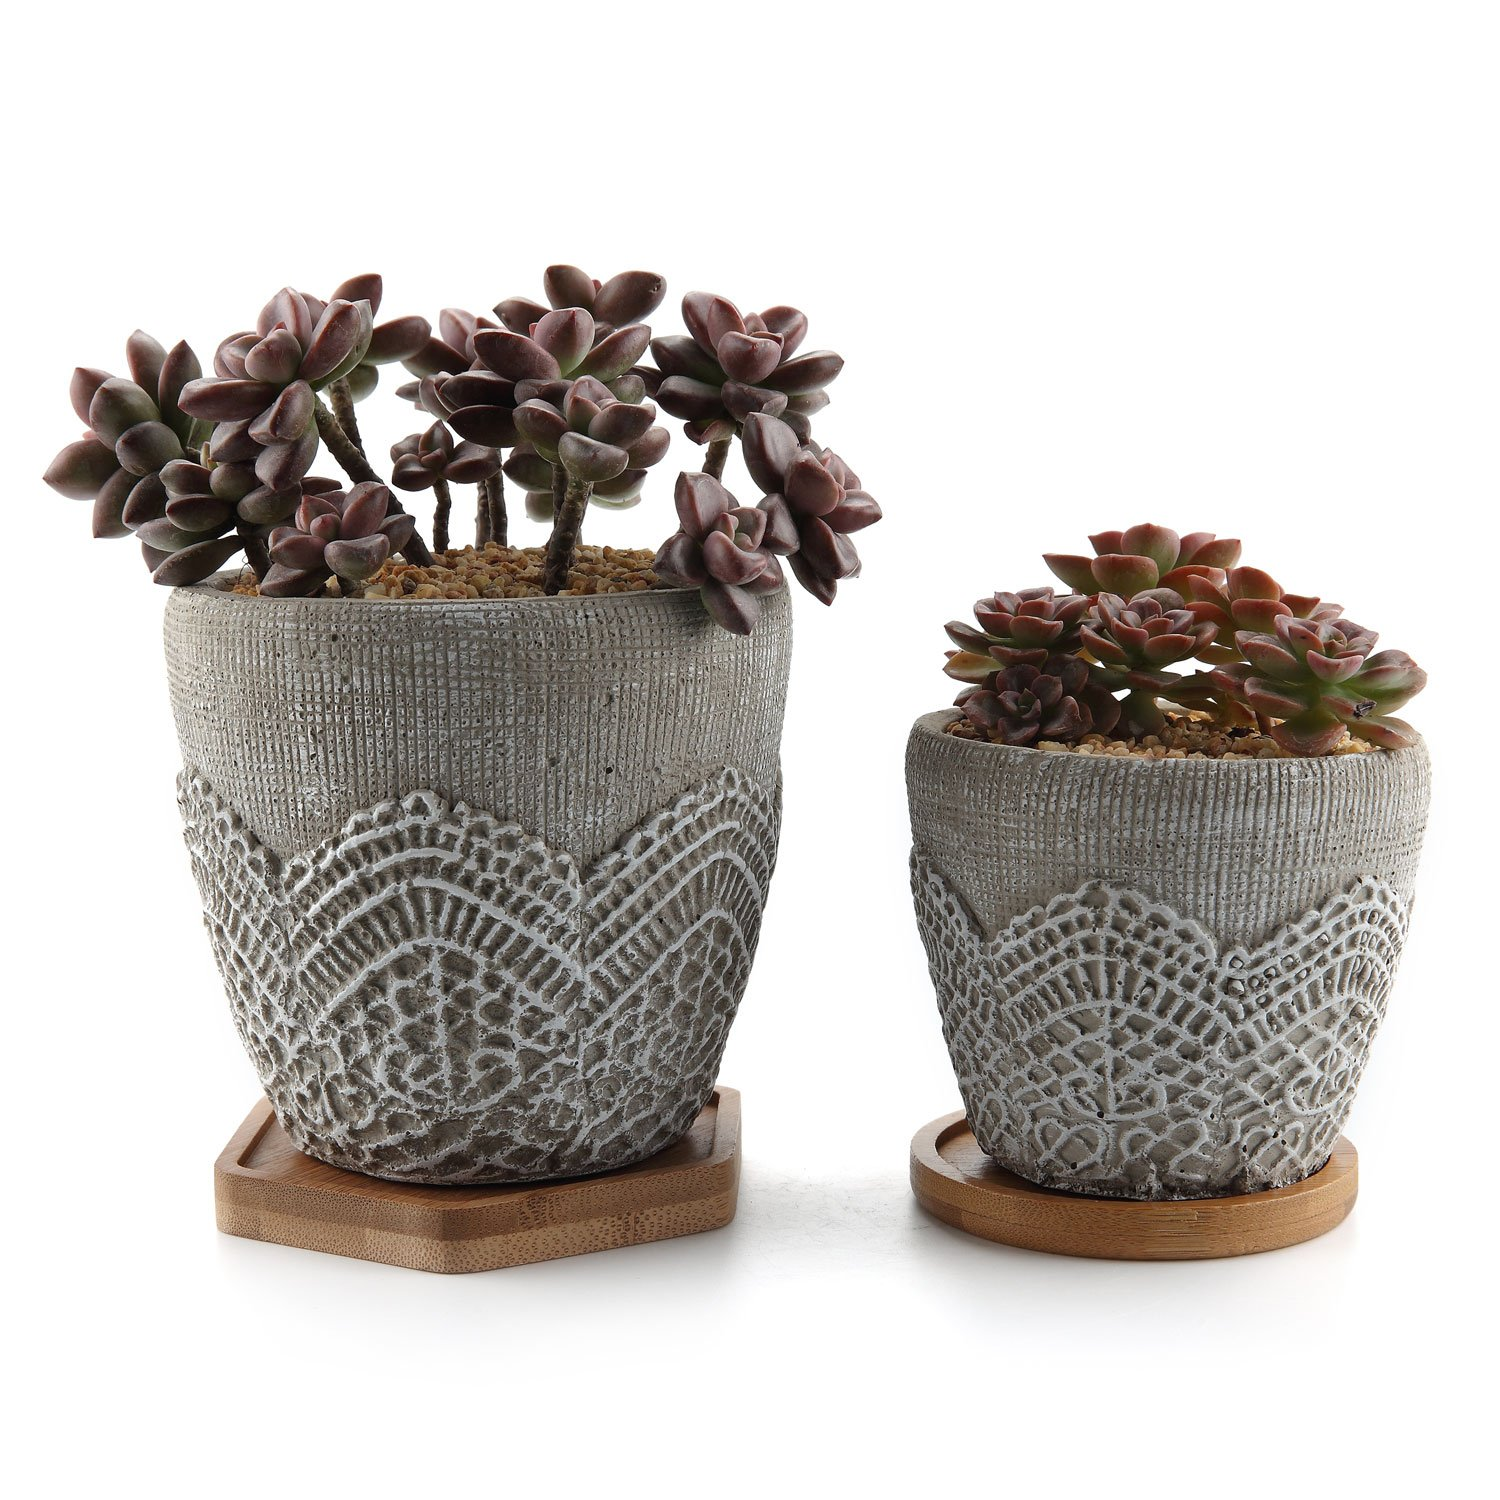 T4U Cement Lace Pattern Succulent Plant Pot Cactus Plant Pot Container Planter Classic Design Collection with Bamboo Tray – Pack of 2